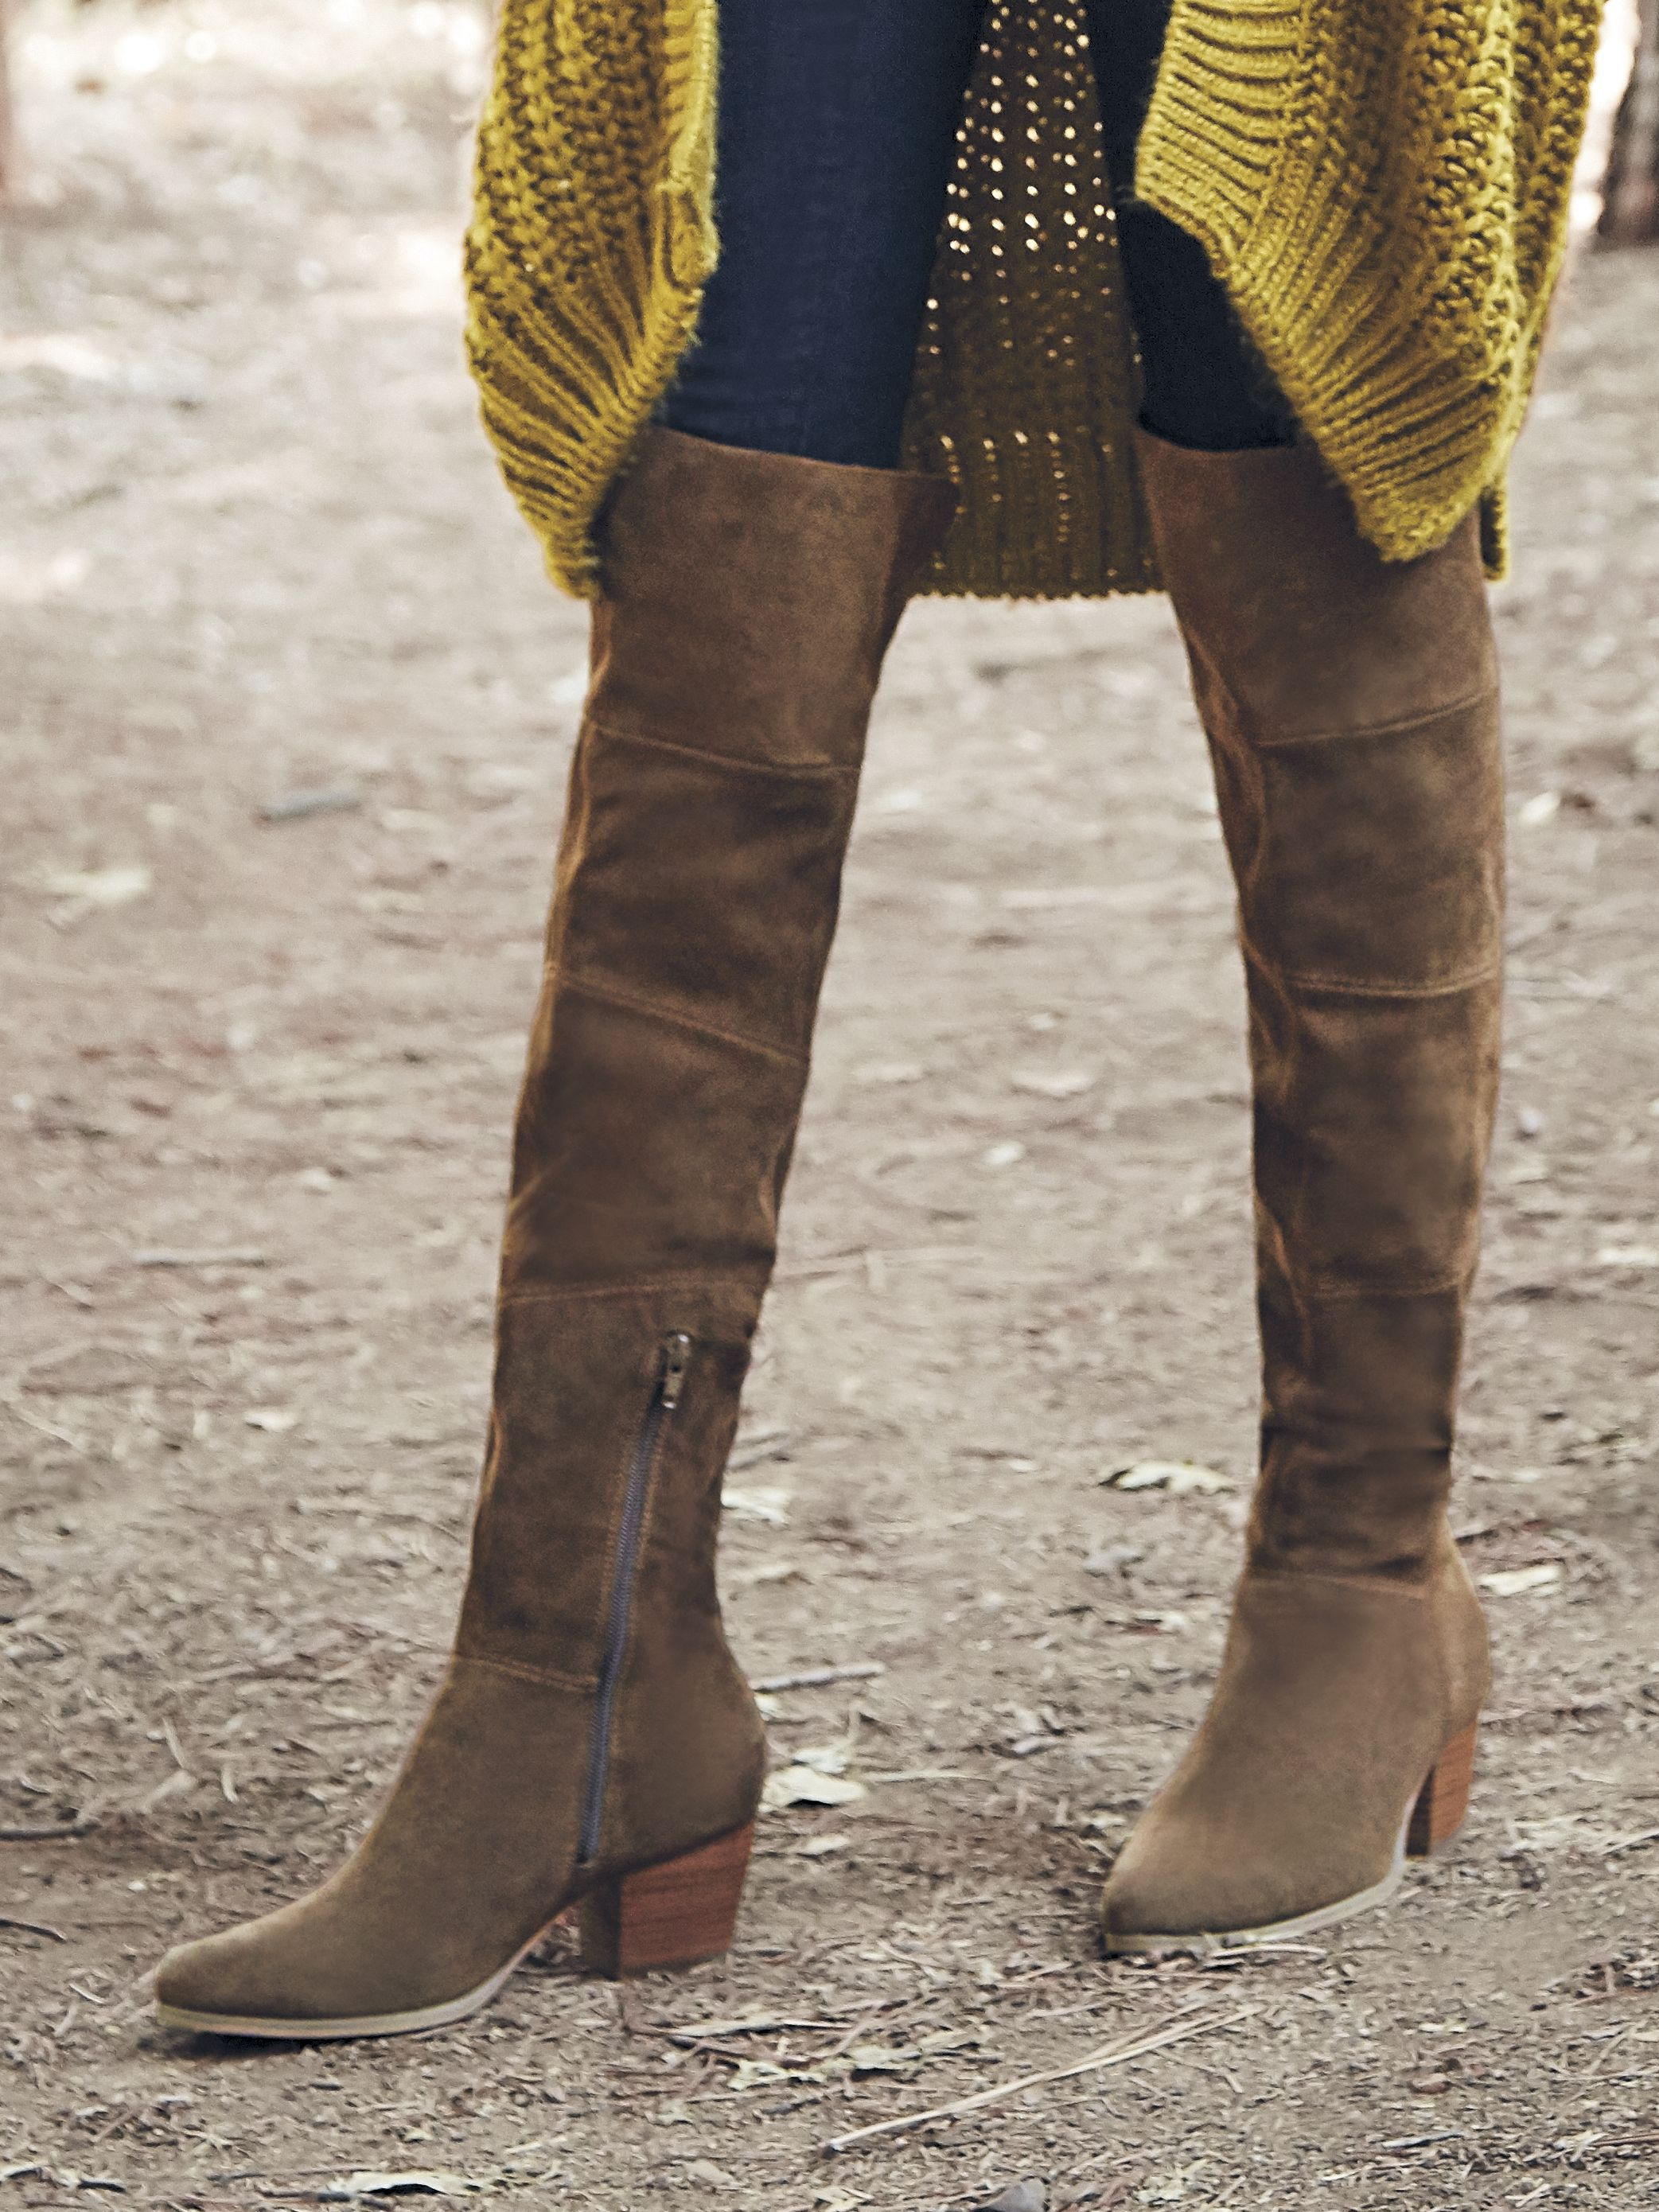 d3b08d89816 Brown suede over-the-knee boots